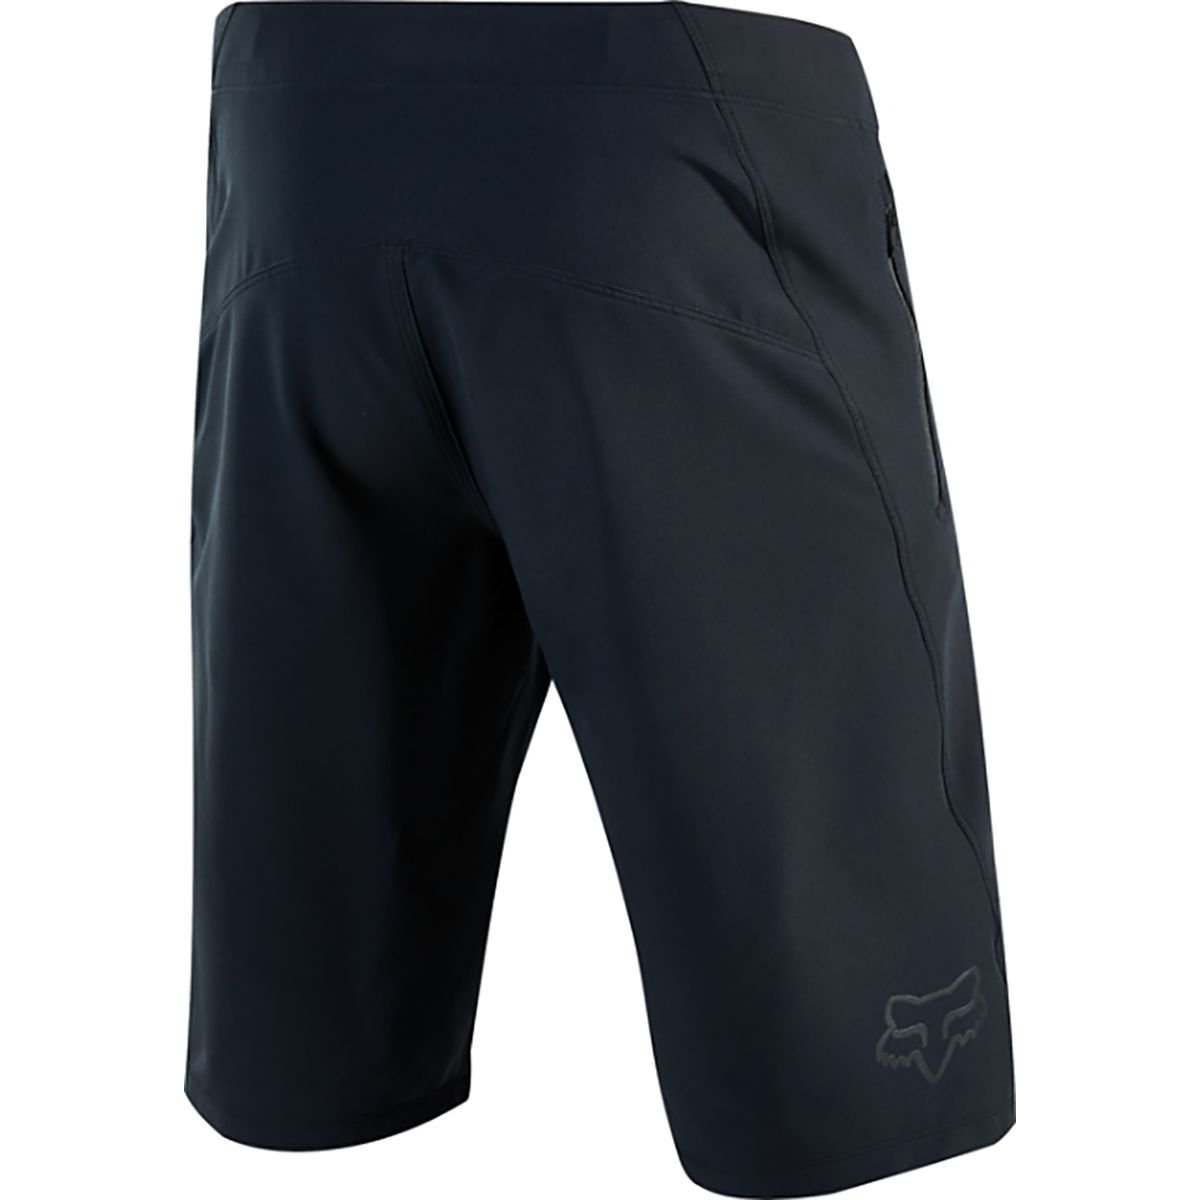 Fox Racing Altitude Shorts - Men's Black, 36